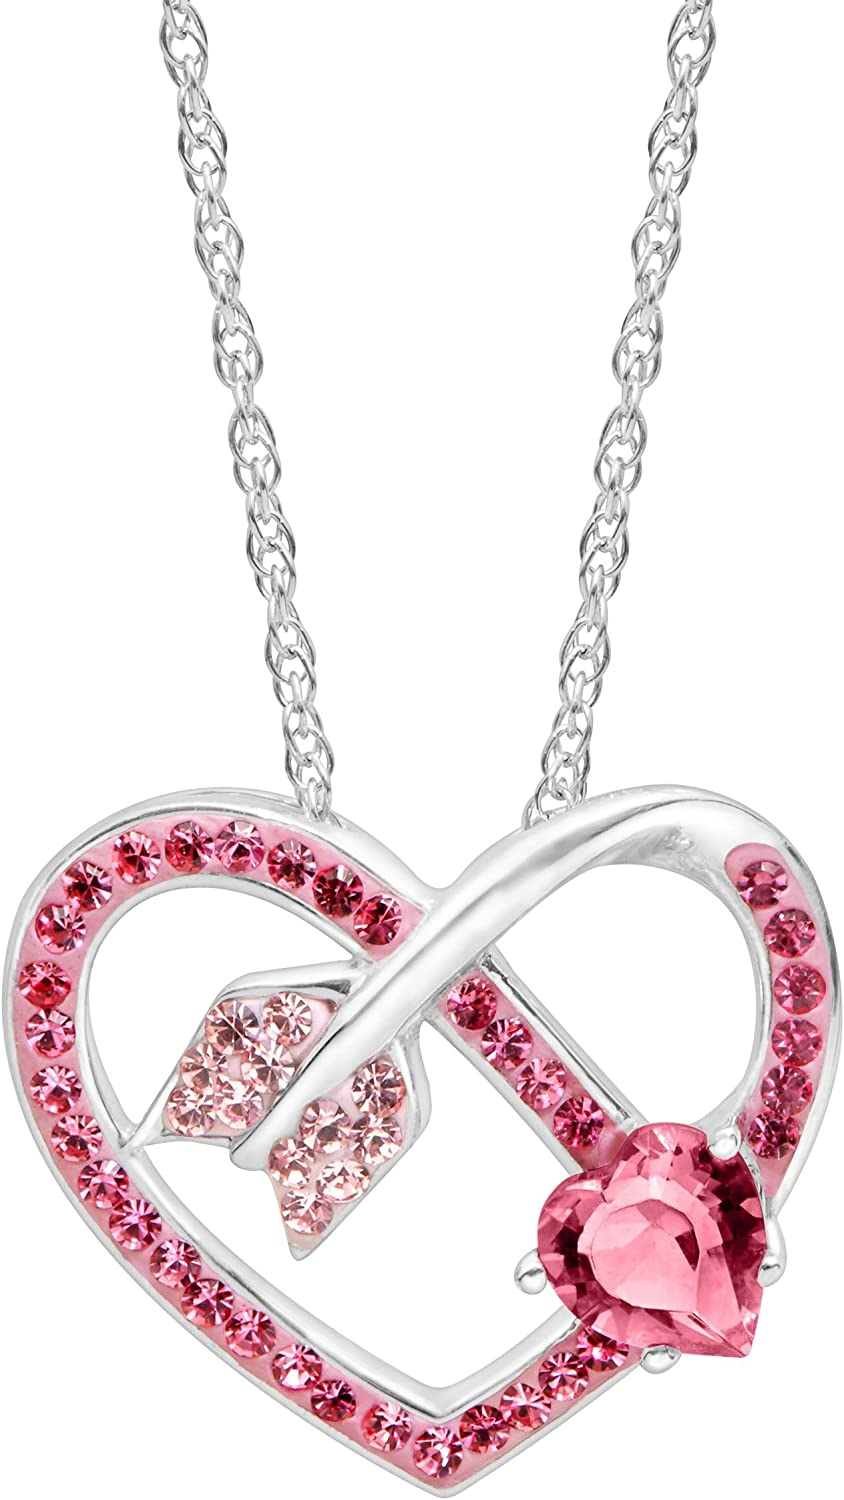 Bargain Crystaluxe Max 59% OFF Arrow Heart Pendant with Swarovski Rose Pink Crysta